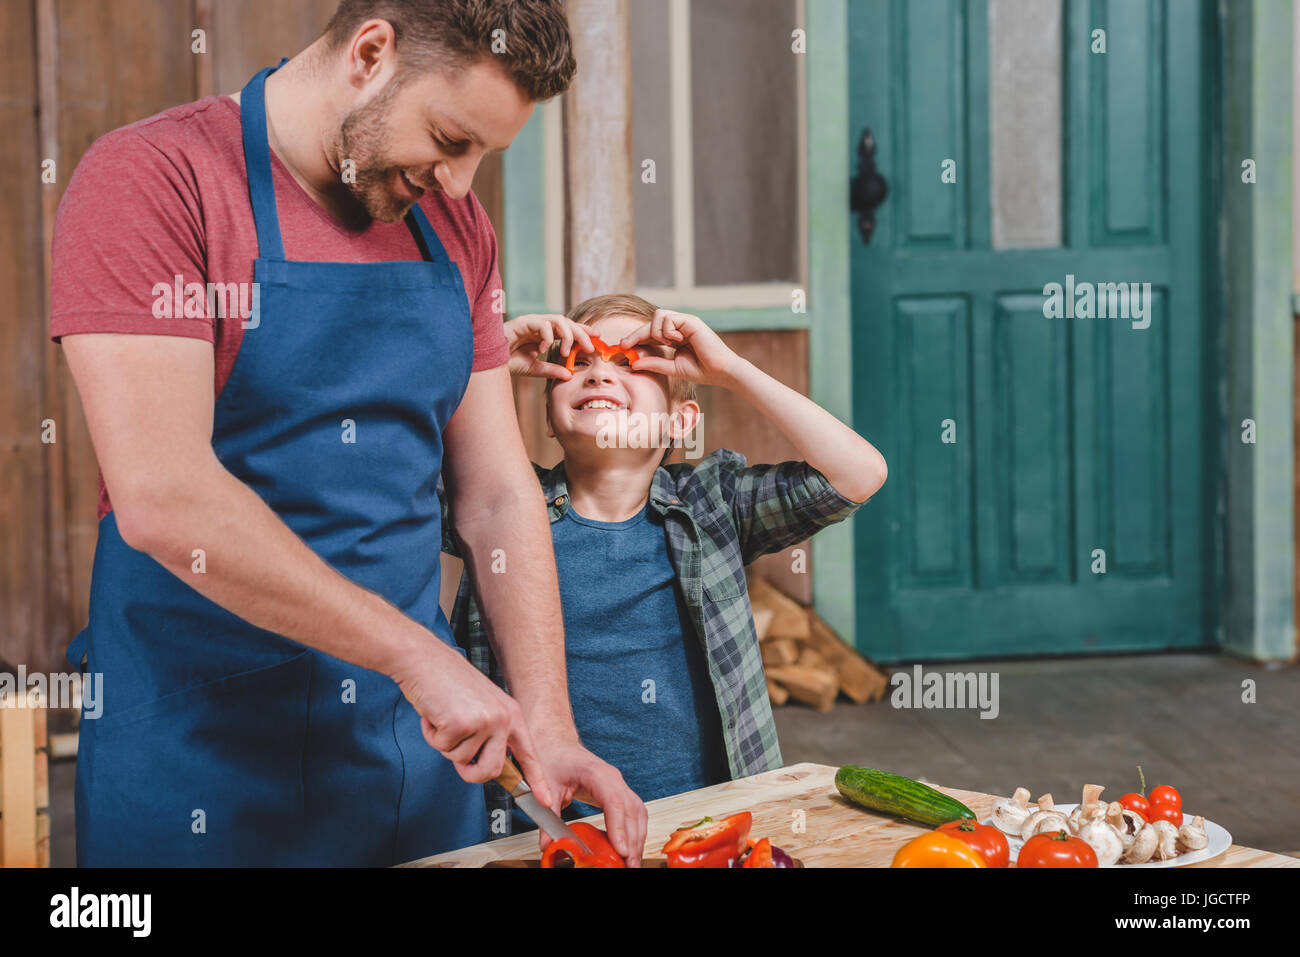 Smiling little boy looking at happy father cutting vegetables on cutting board, dad and son cooking concept - Stock Image